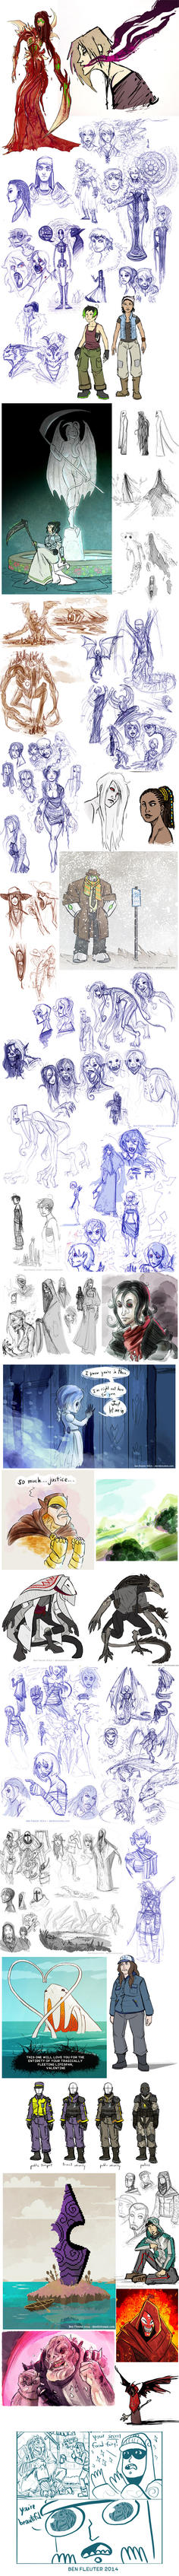 Doodle Dump May 2014 by Beanjamish